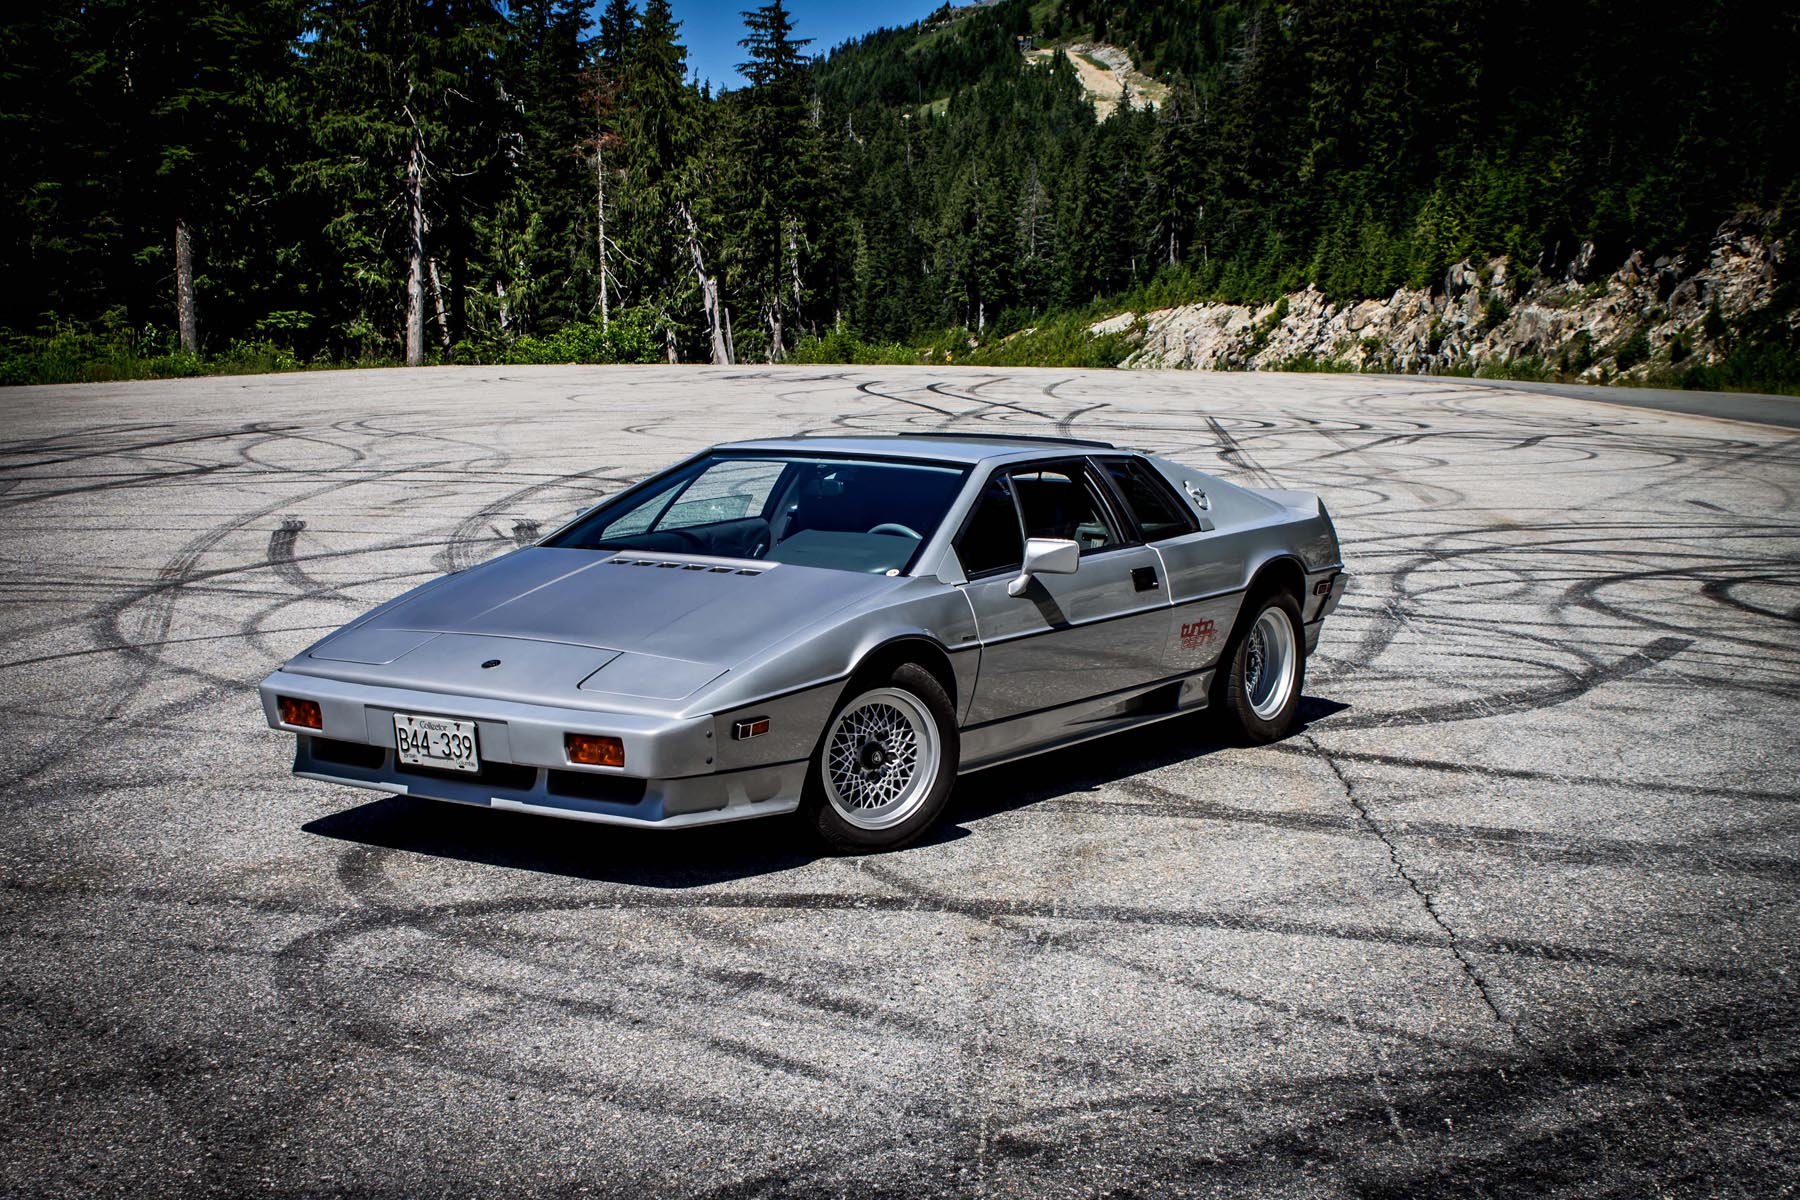 1984 Lotus Esprit Turbo Autosca